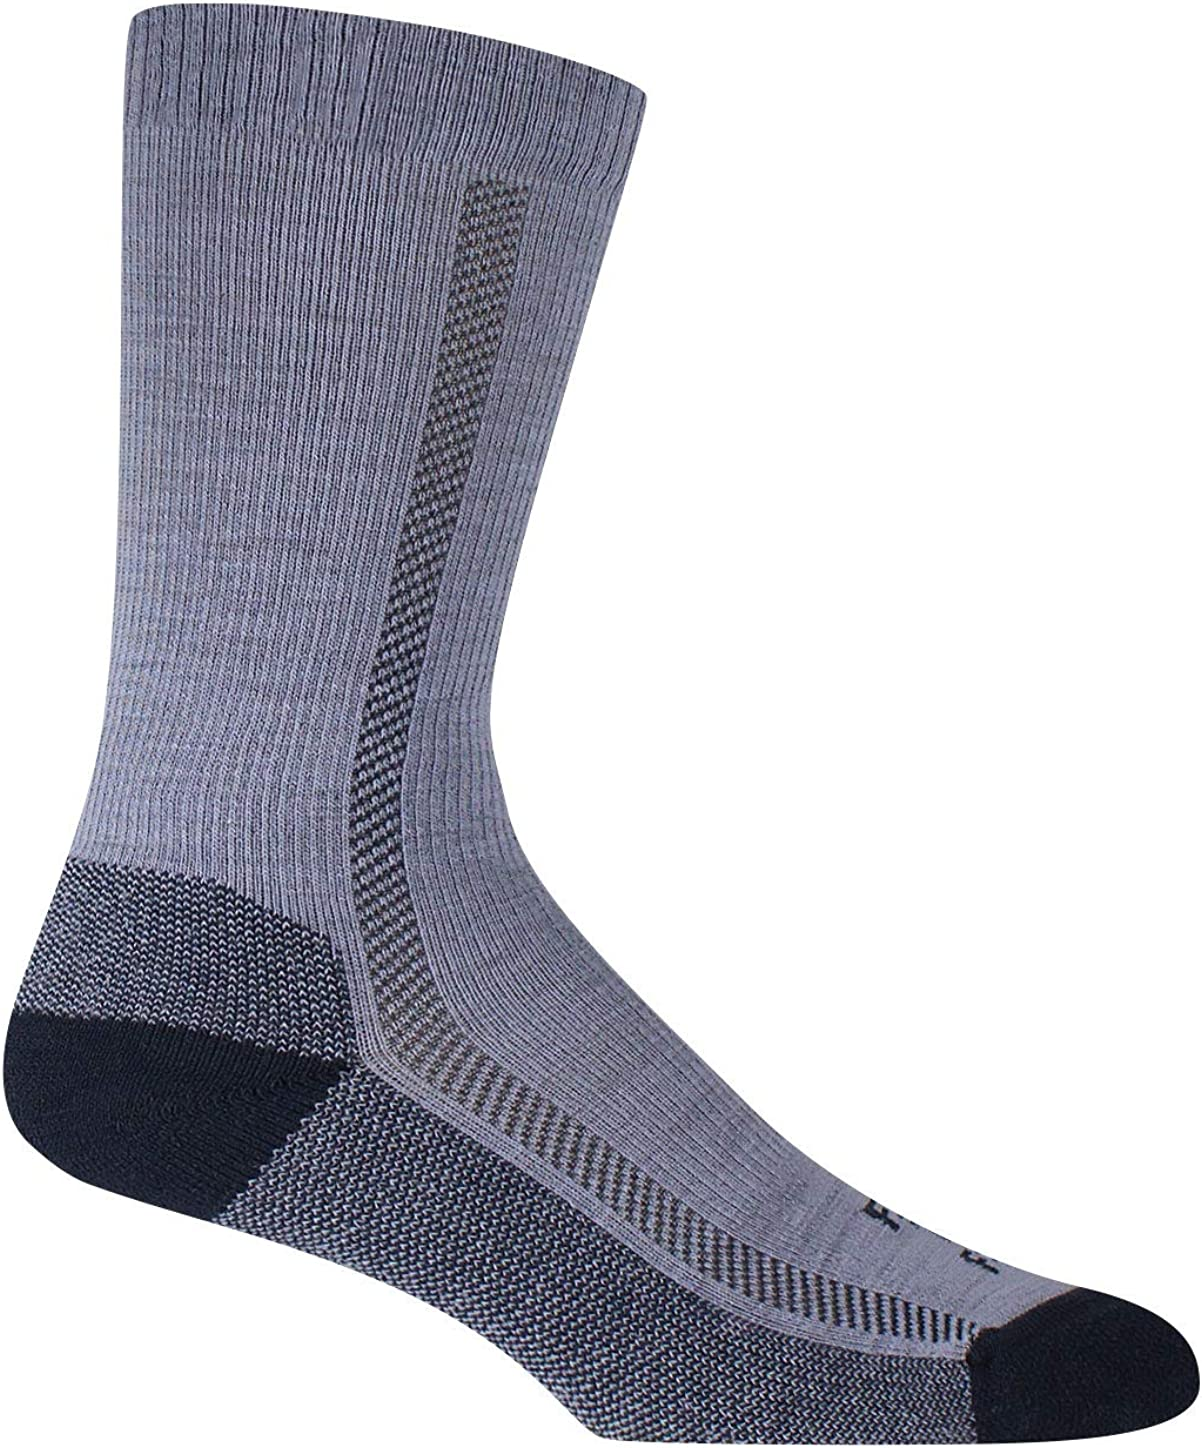 Farm to Feet Men's Madison Midweight Hiking Socks